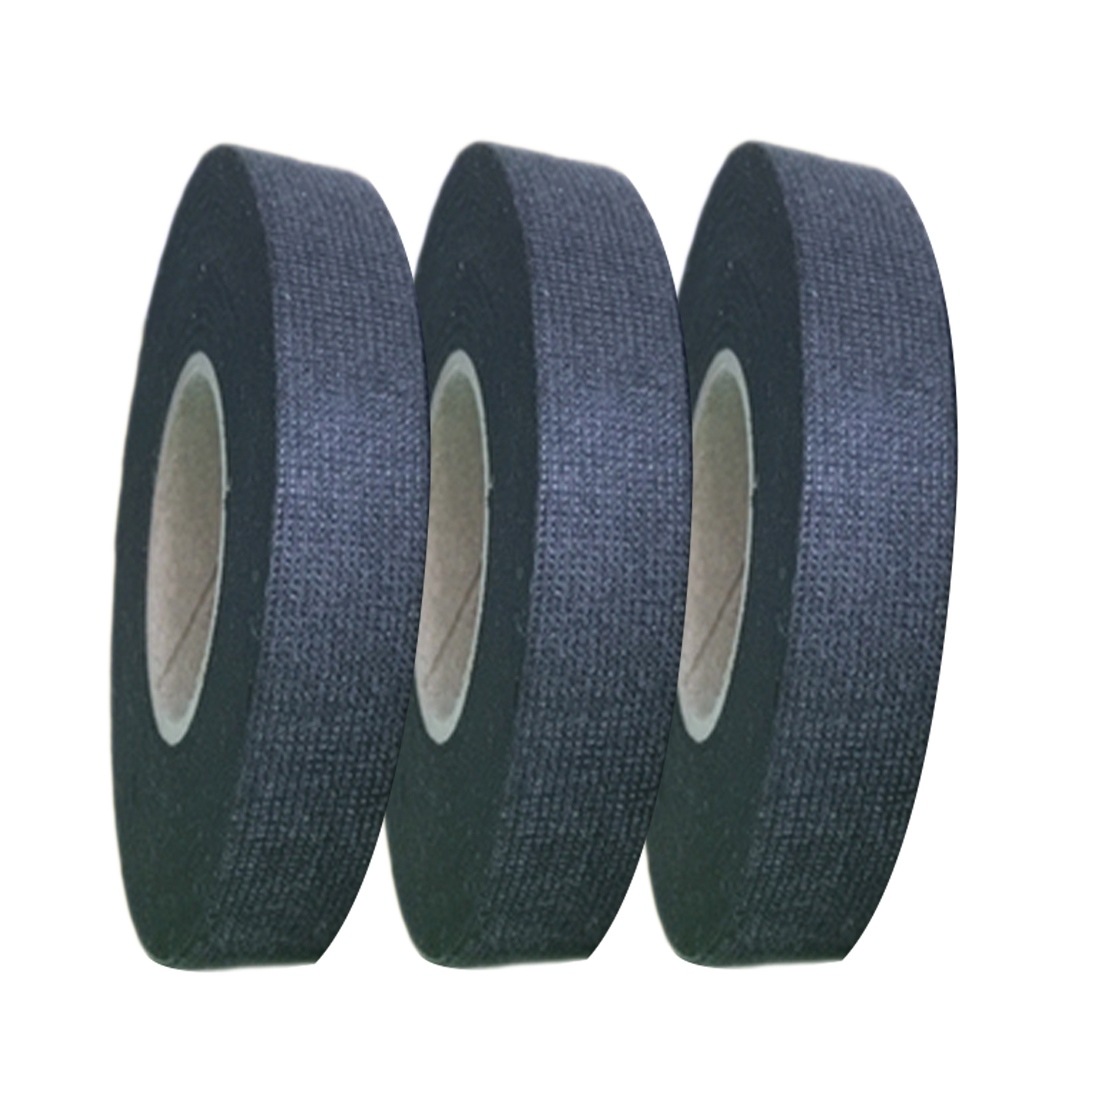 medium resolution of high 1pc heat resistant 19mm x 15m adhesive flannel fabric cloth tape cable harness wiring for car auto repair parts tool in hand tool sets from tools on